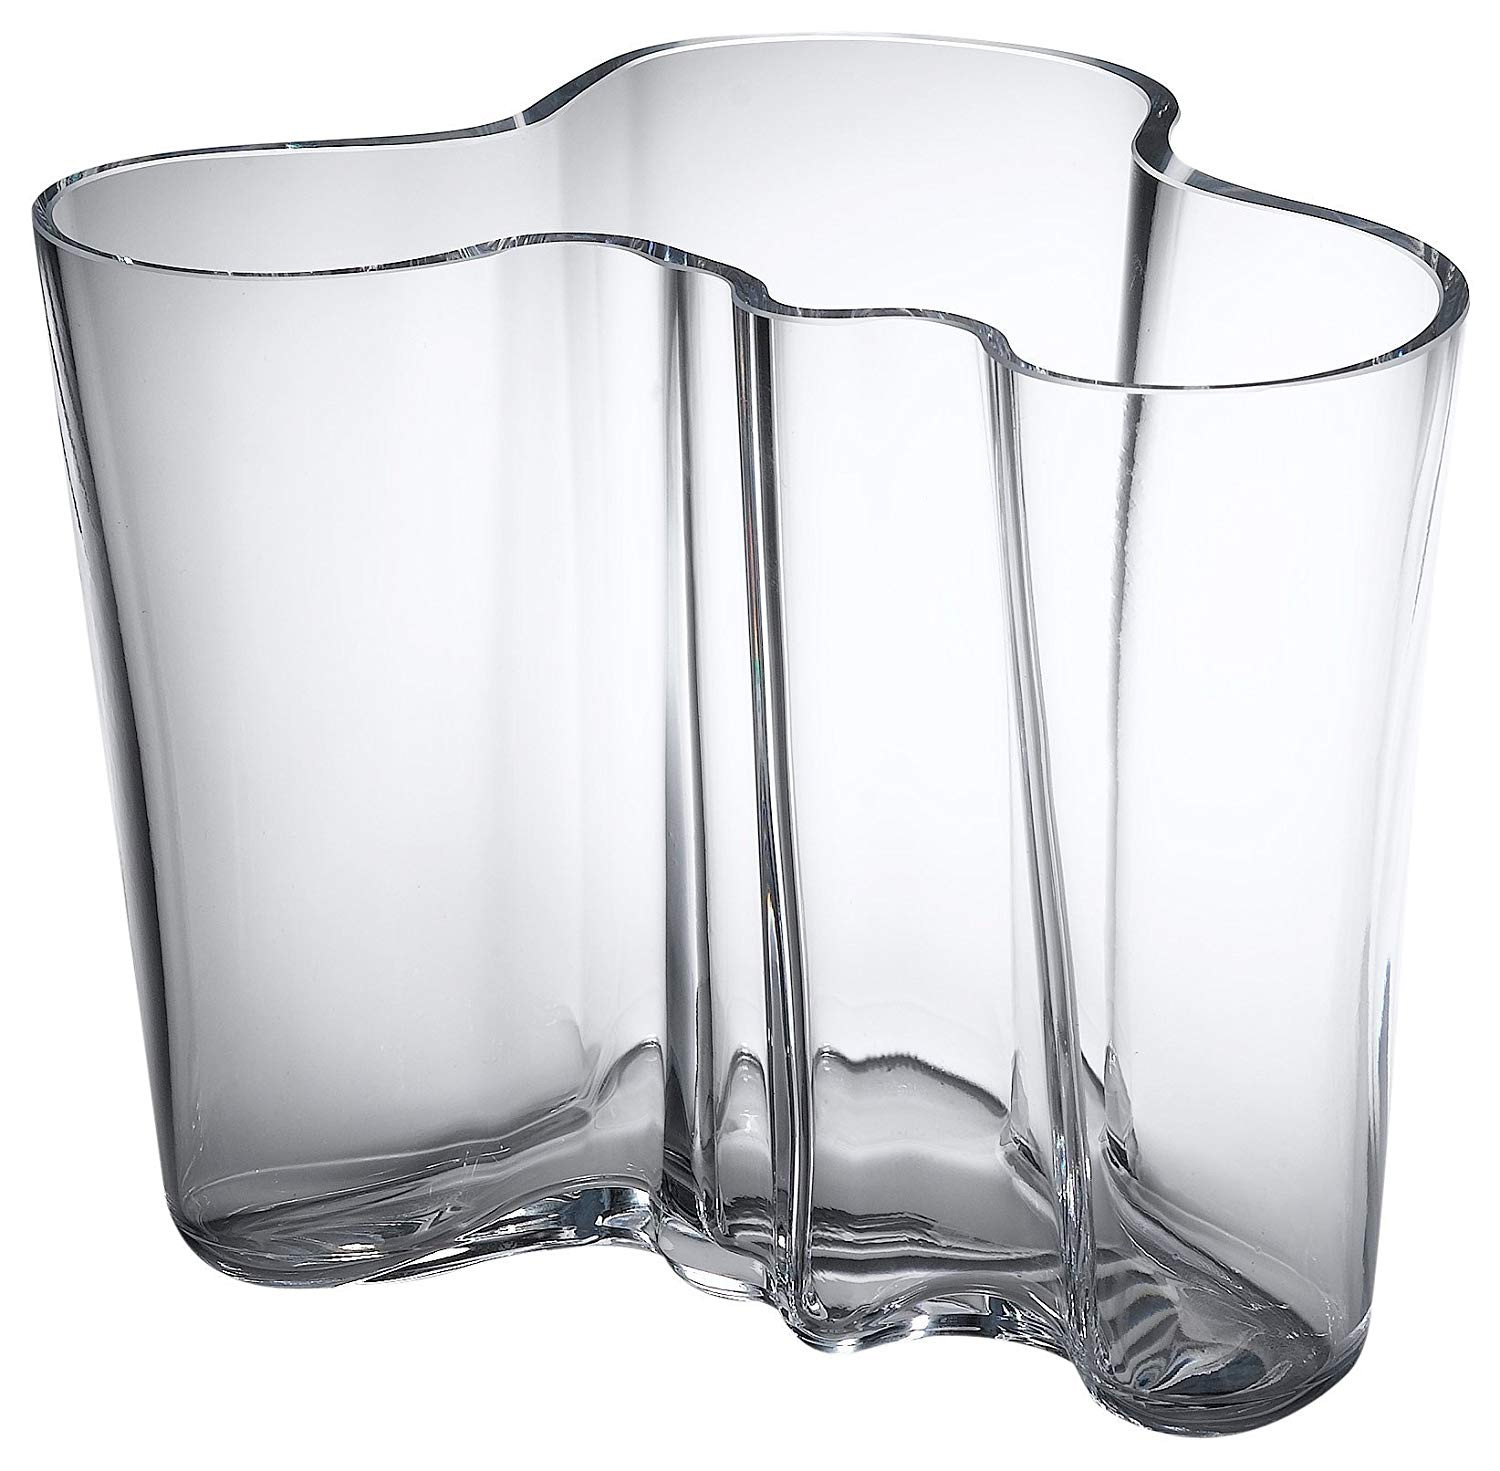 rcr crystal vase price of amazon com iittala aalto 4 3 4 inch clear glass vase home kitchen in 71bxp5gnwas sl1500